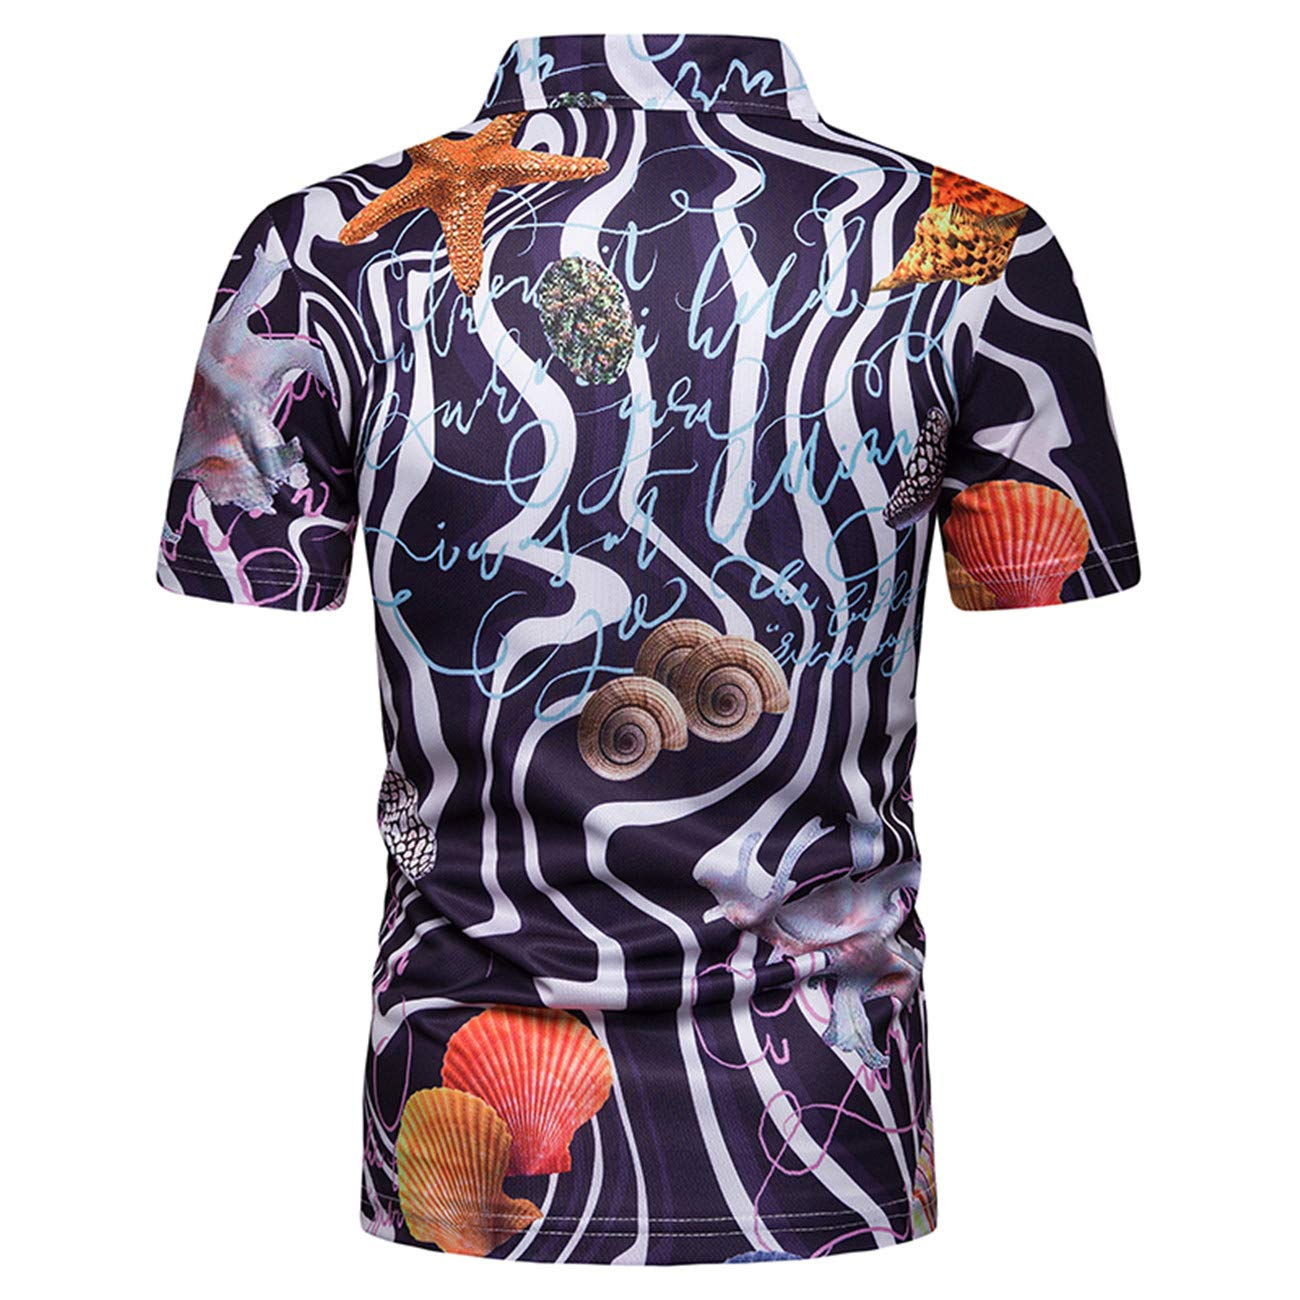 Mens Floral Printed Contrast Color Short Sleeve Leisure and Fashion Polo Shirt